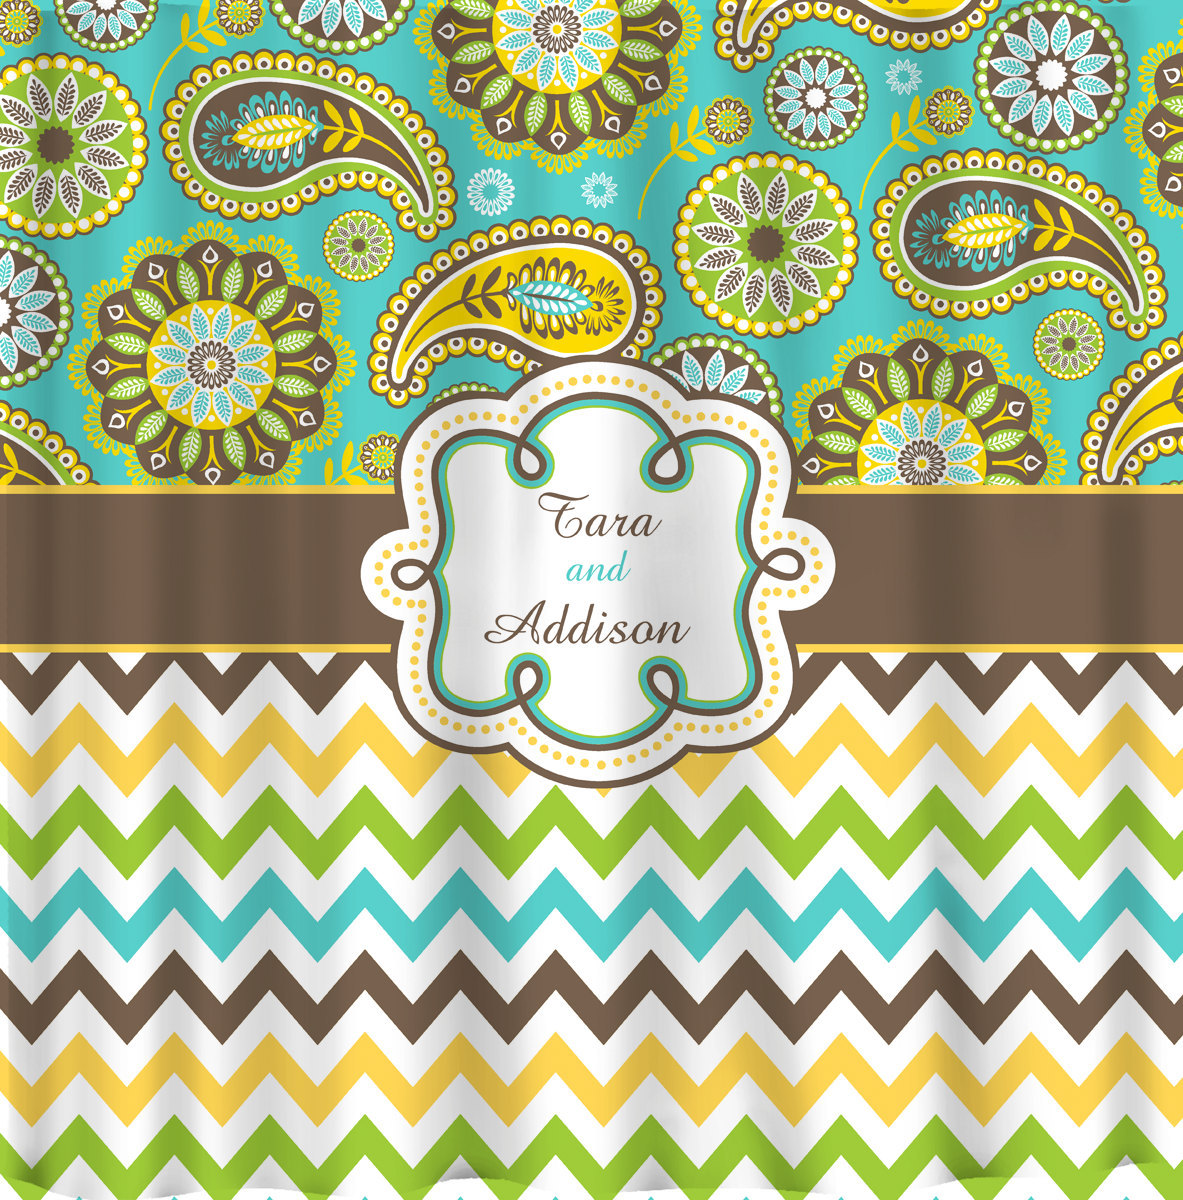 Personalized  Designer Gypsy Paisley  & Chevron Shower Curtain Brown, turquoise,